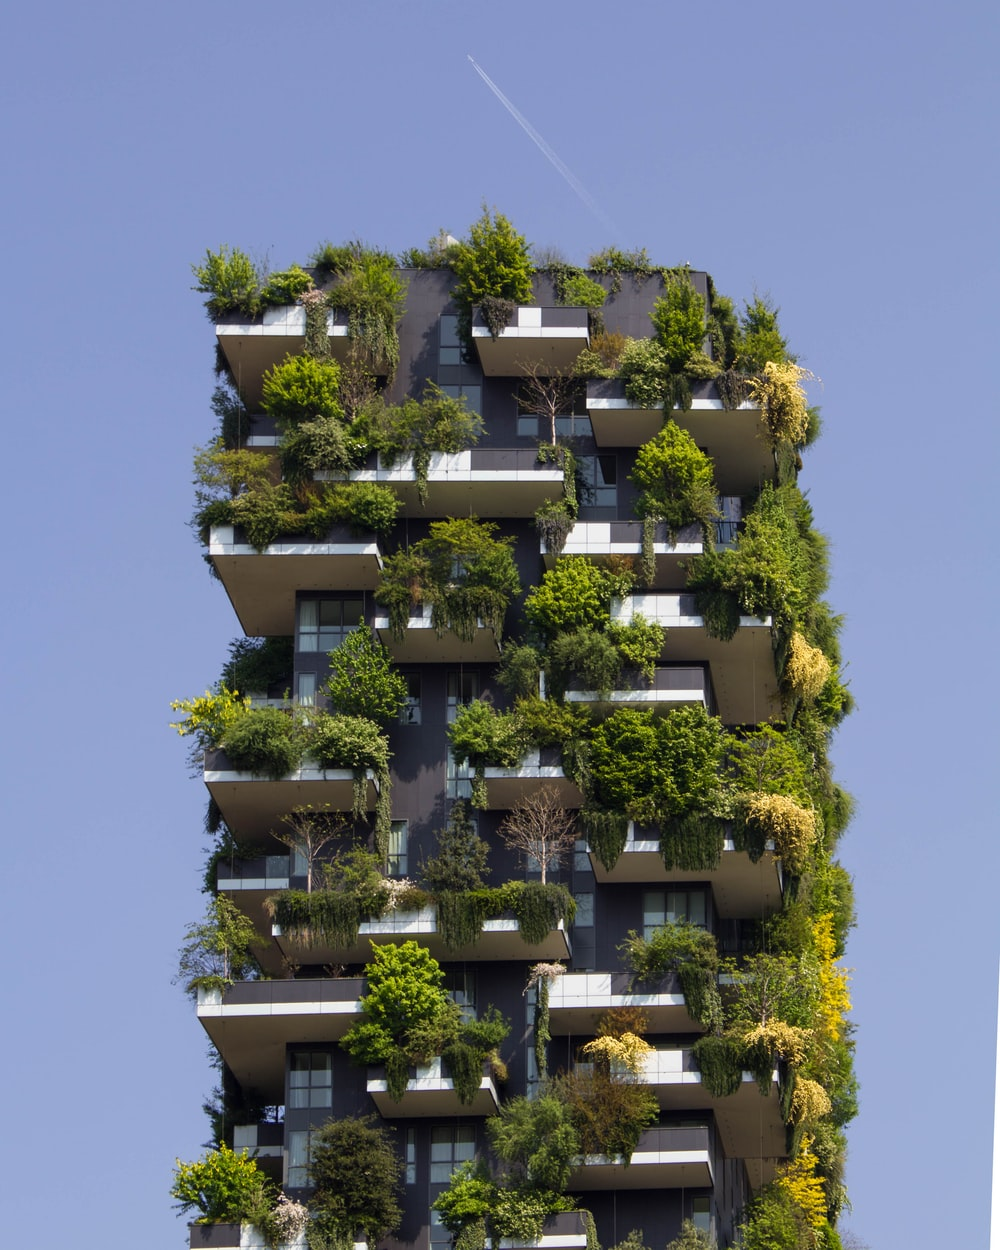 building covered in plants